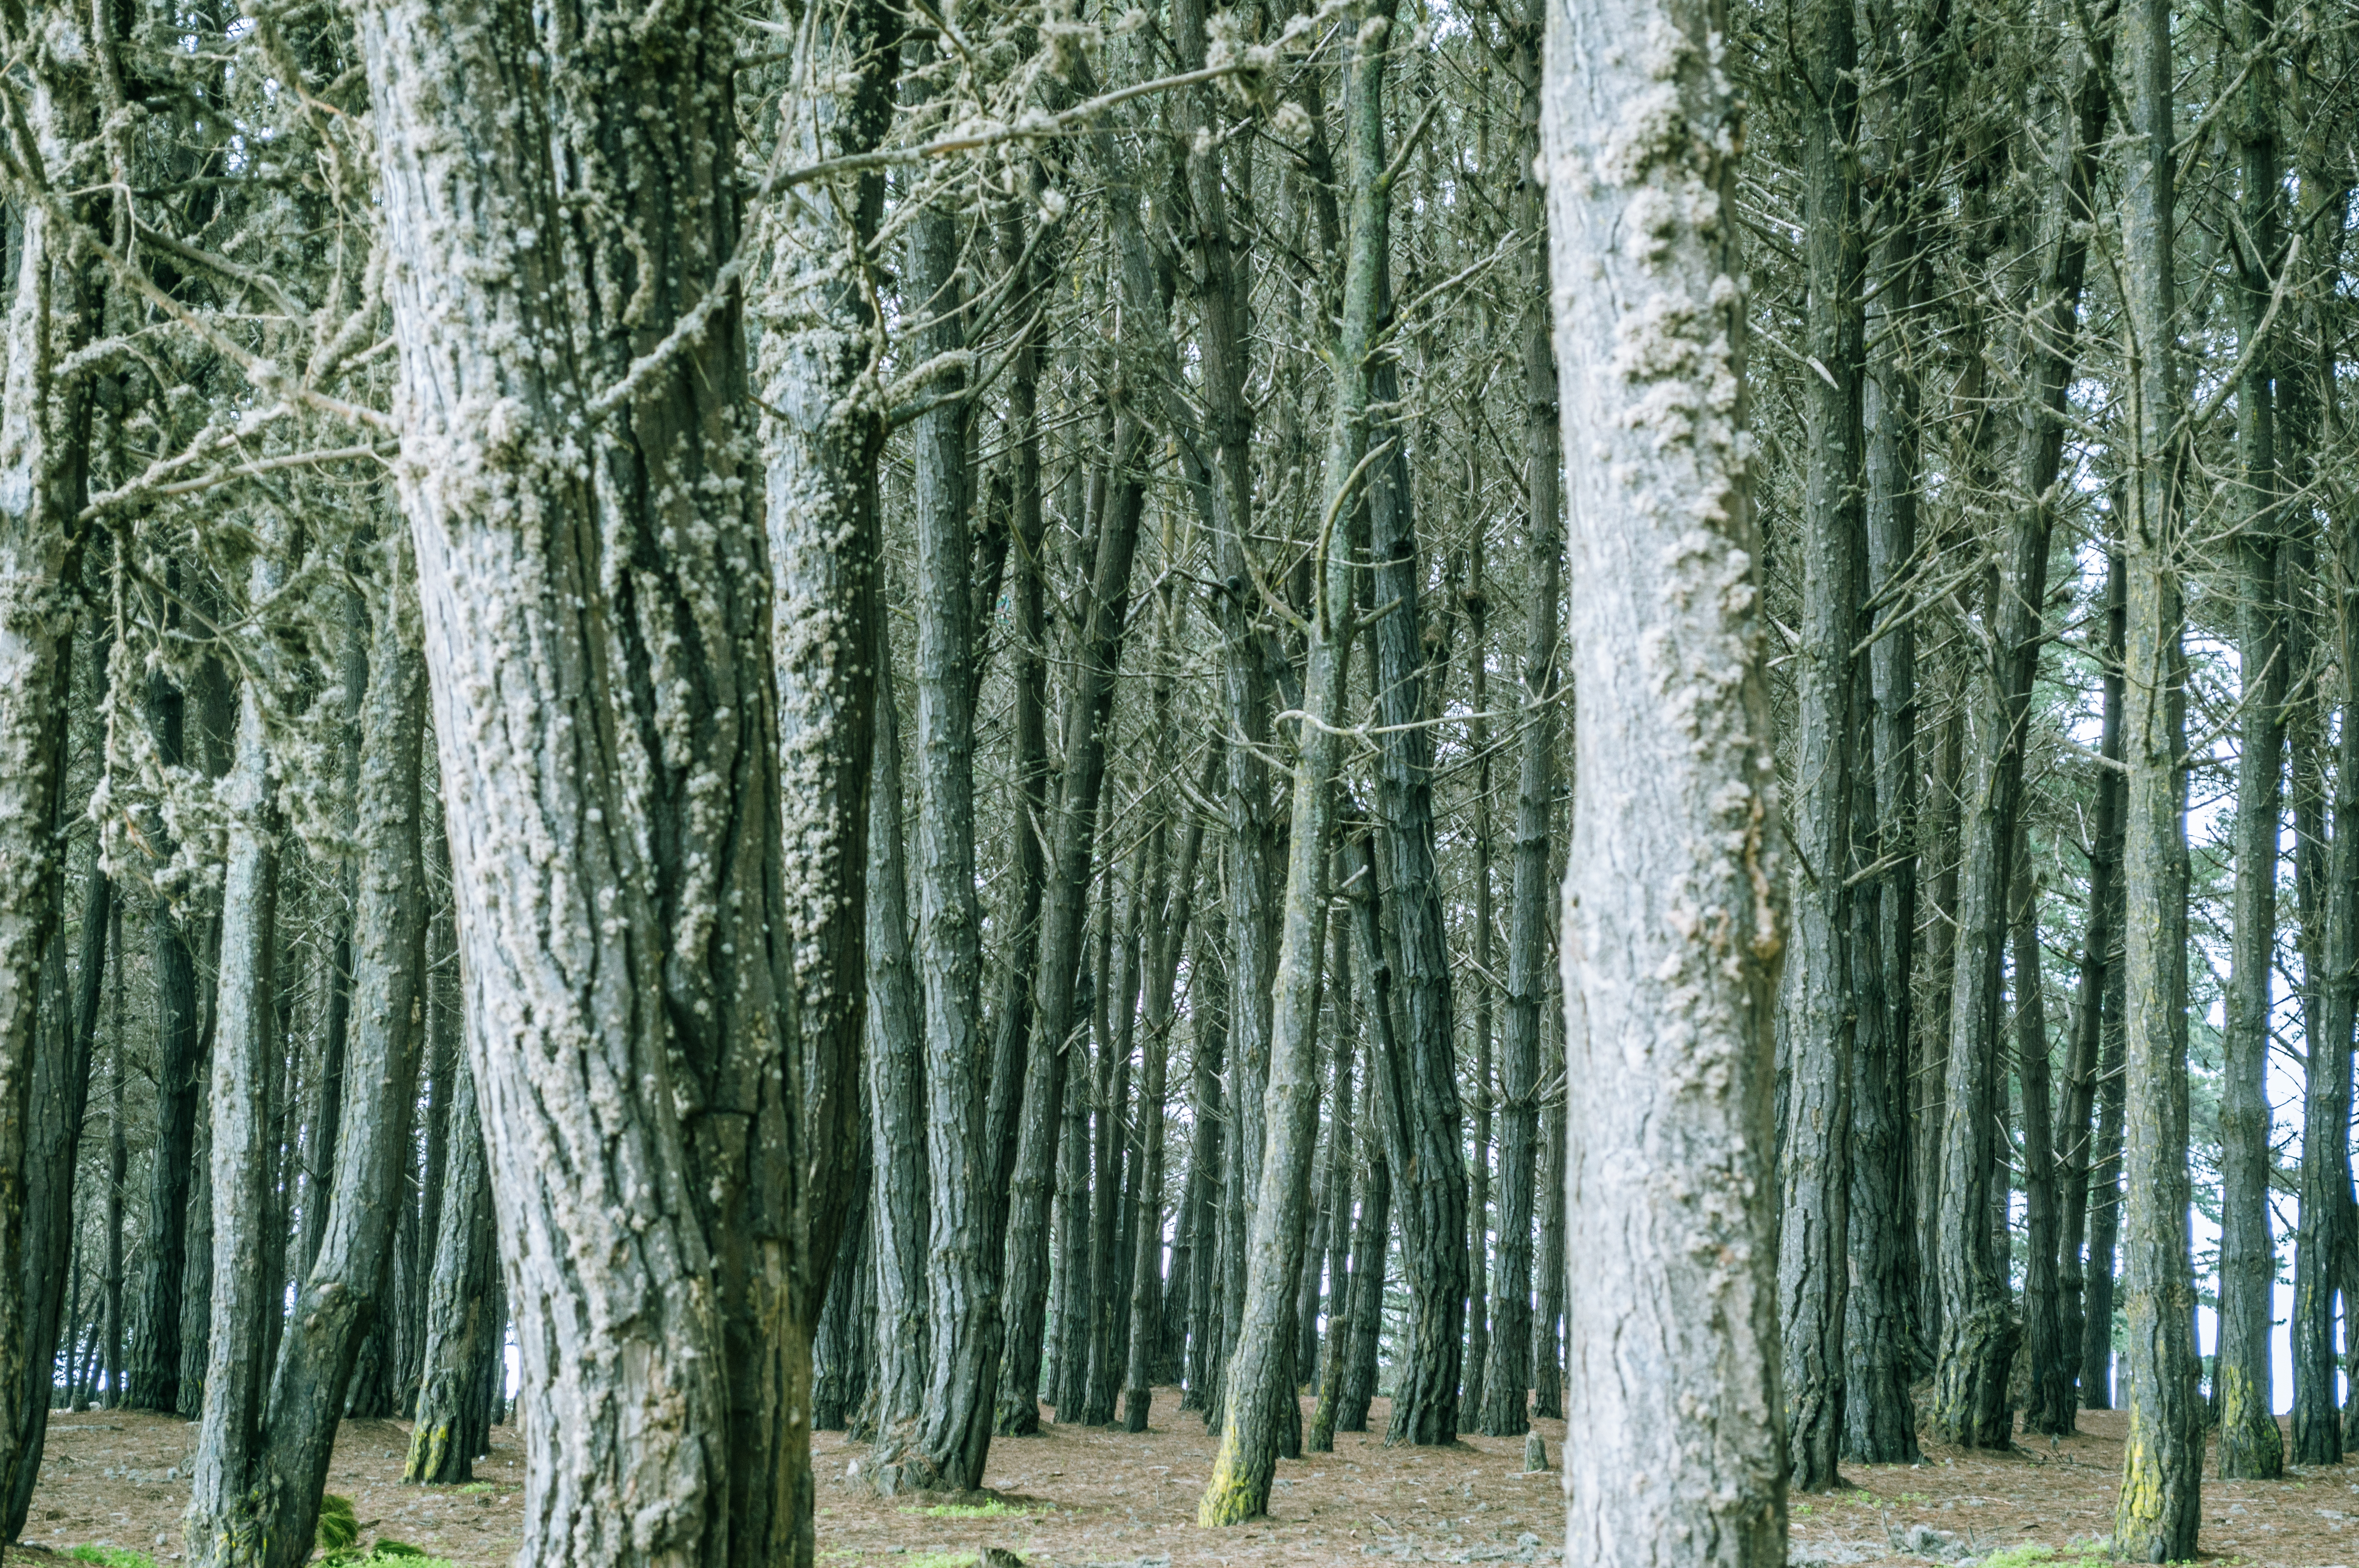 Dense trees in forest photo